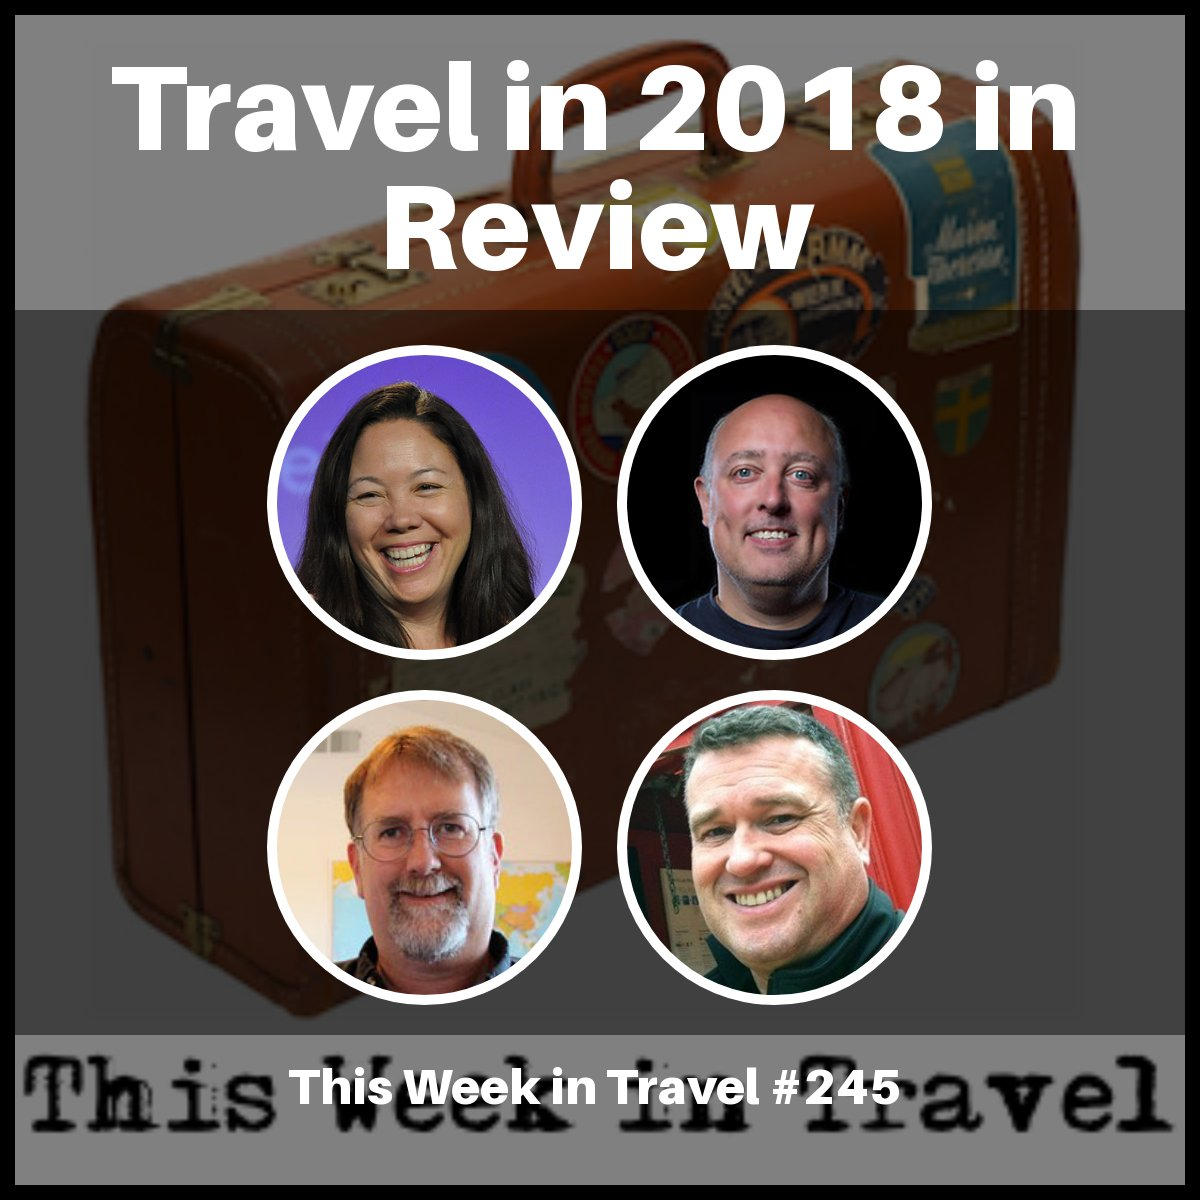 Travel in 2018 in Review – This Week in Travel #245